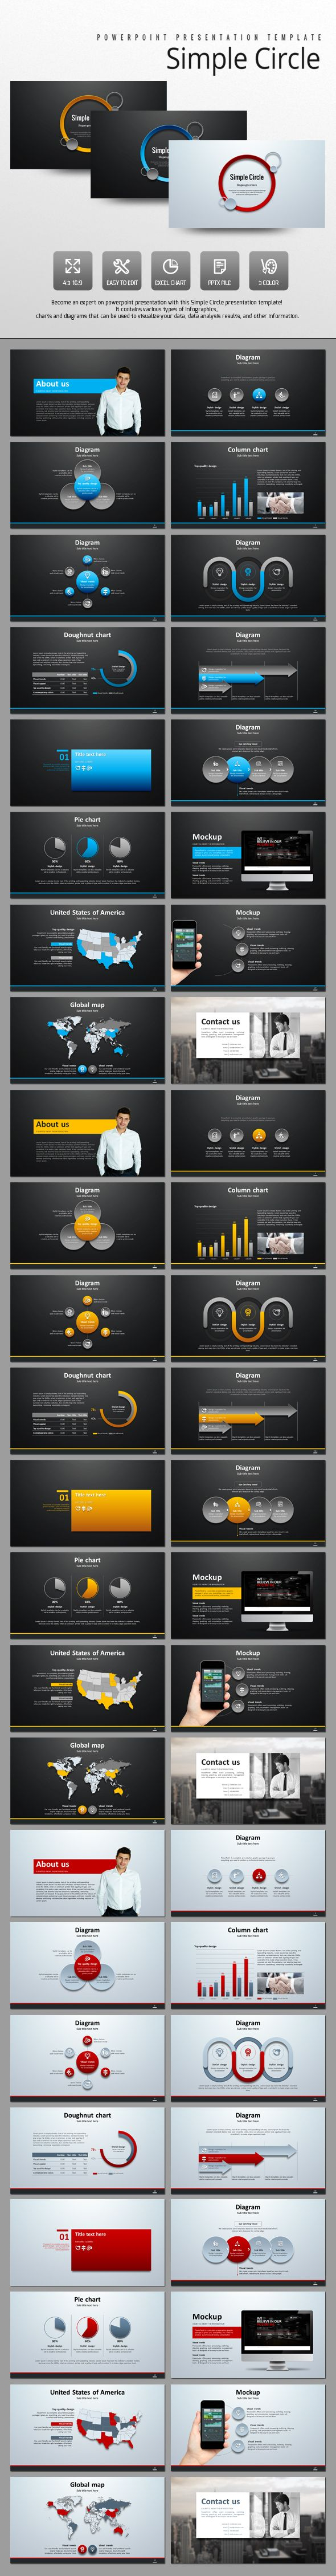 Simple Circle (PowerPoint Templates)